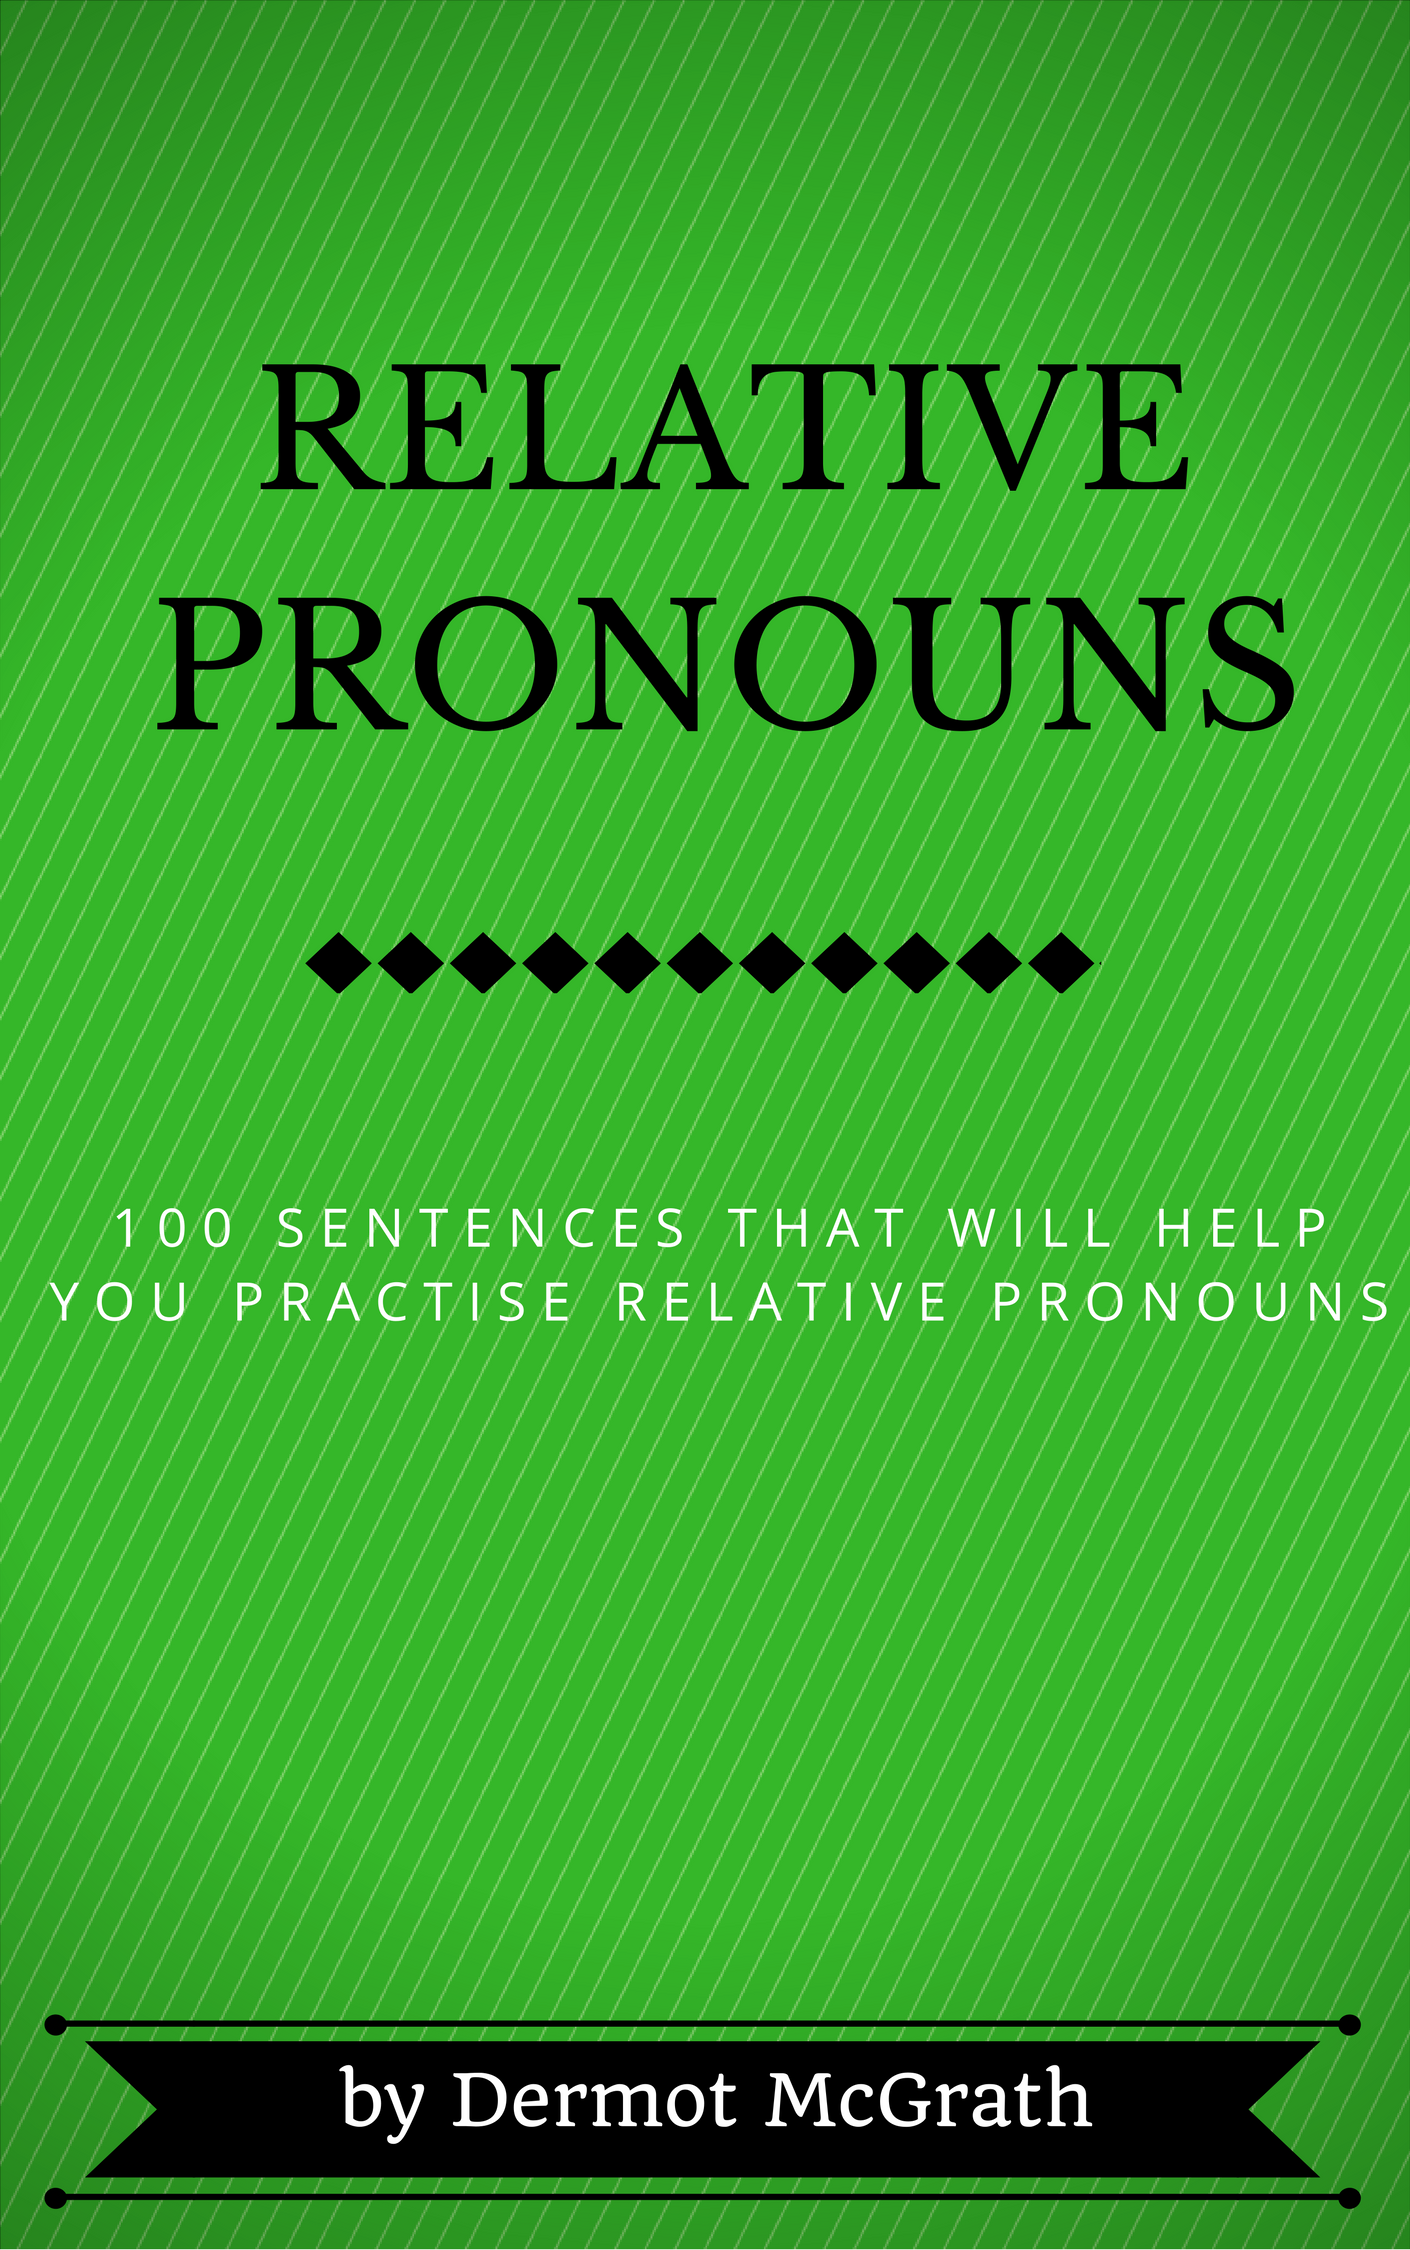 Relative Pronouns - Dermot McGrath